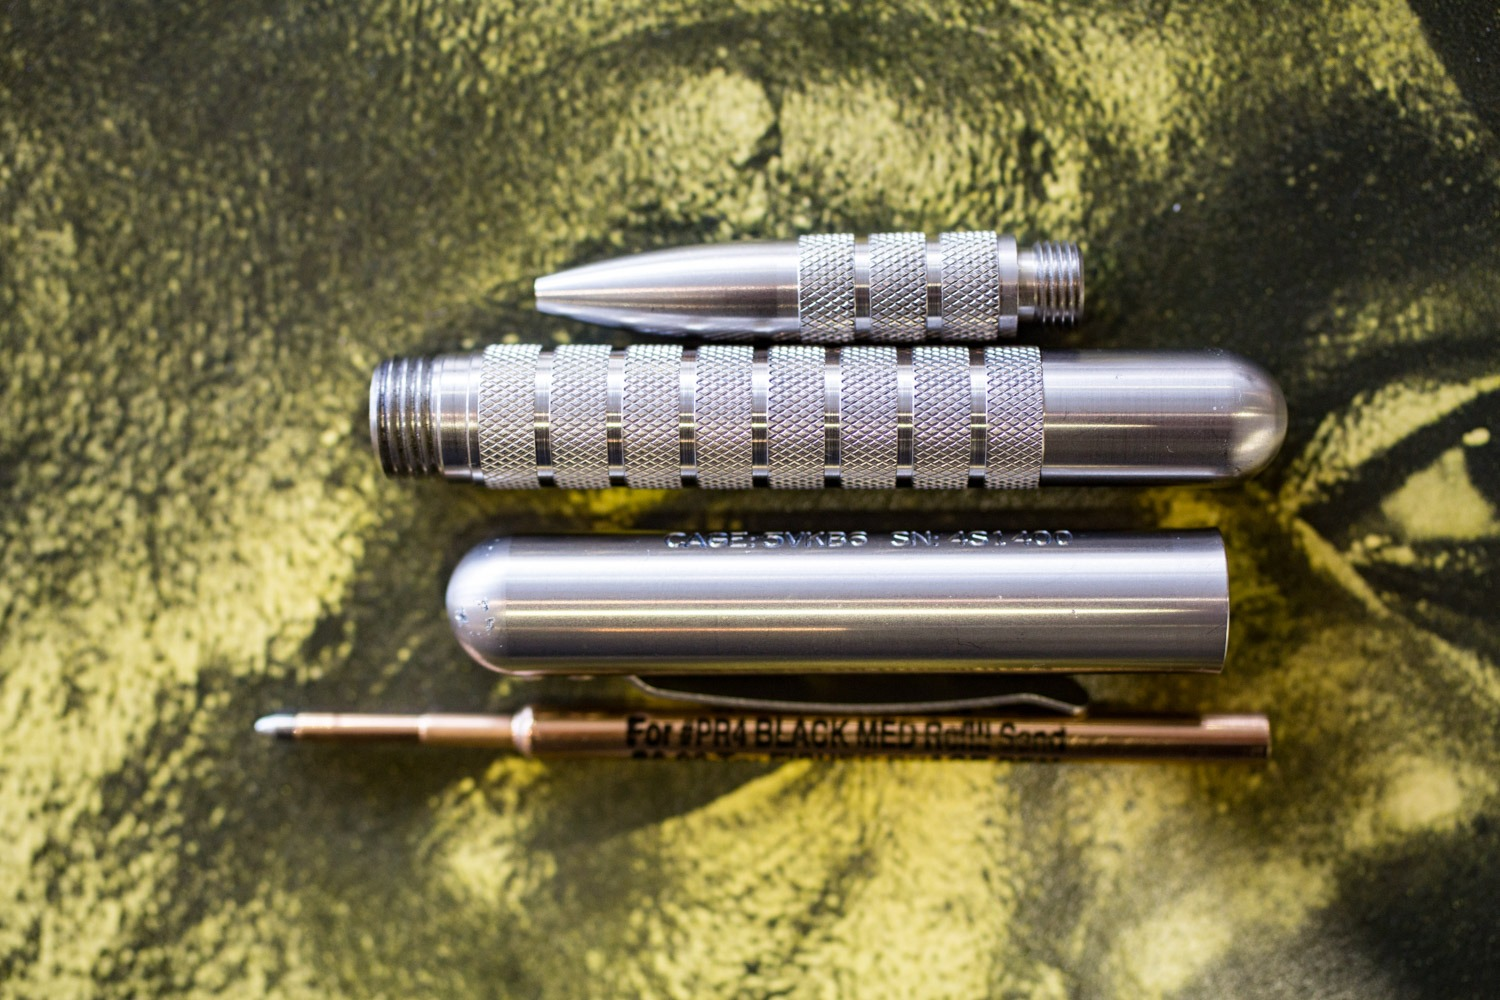 Embassy Pen - Stainless Steell